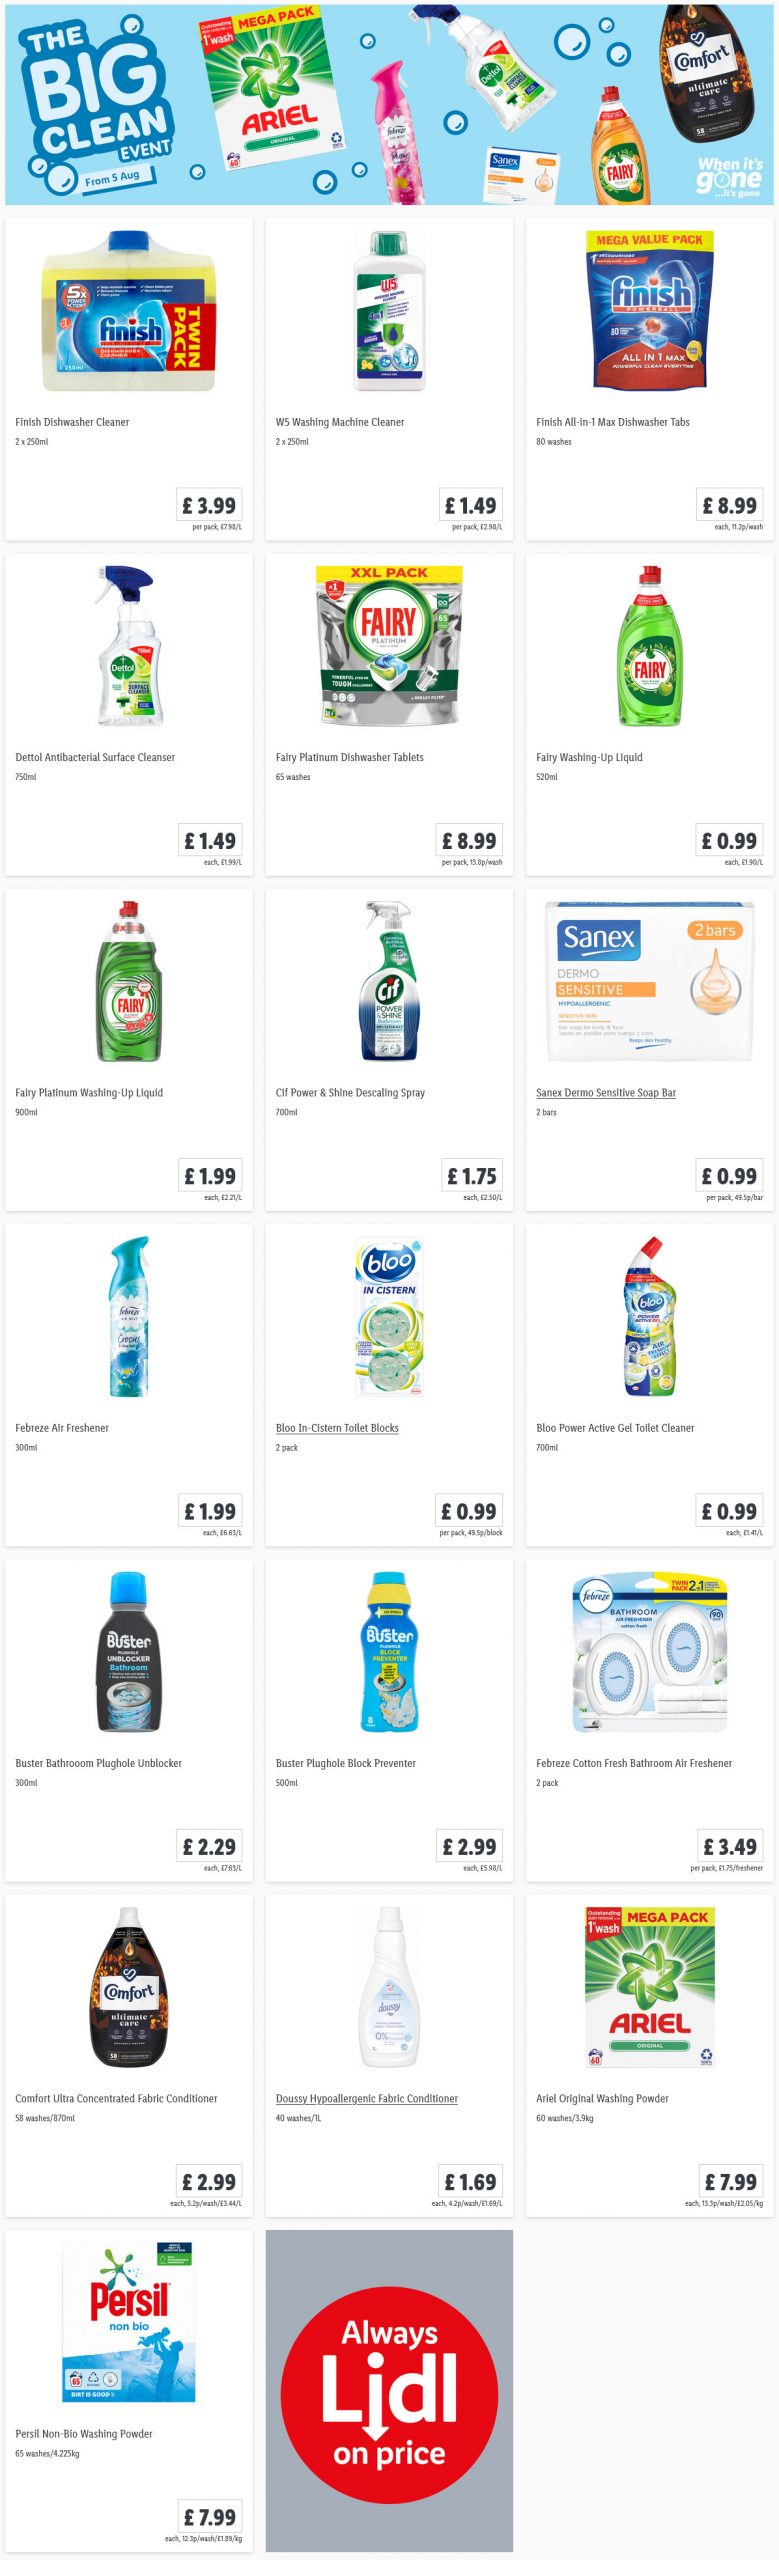 LIDL Offers this Thursday From 5th August 2021 LIDL The Big Clean Event